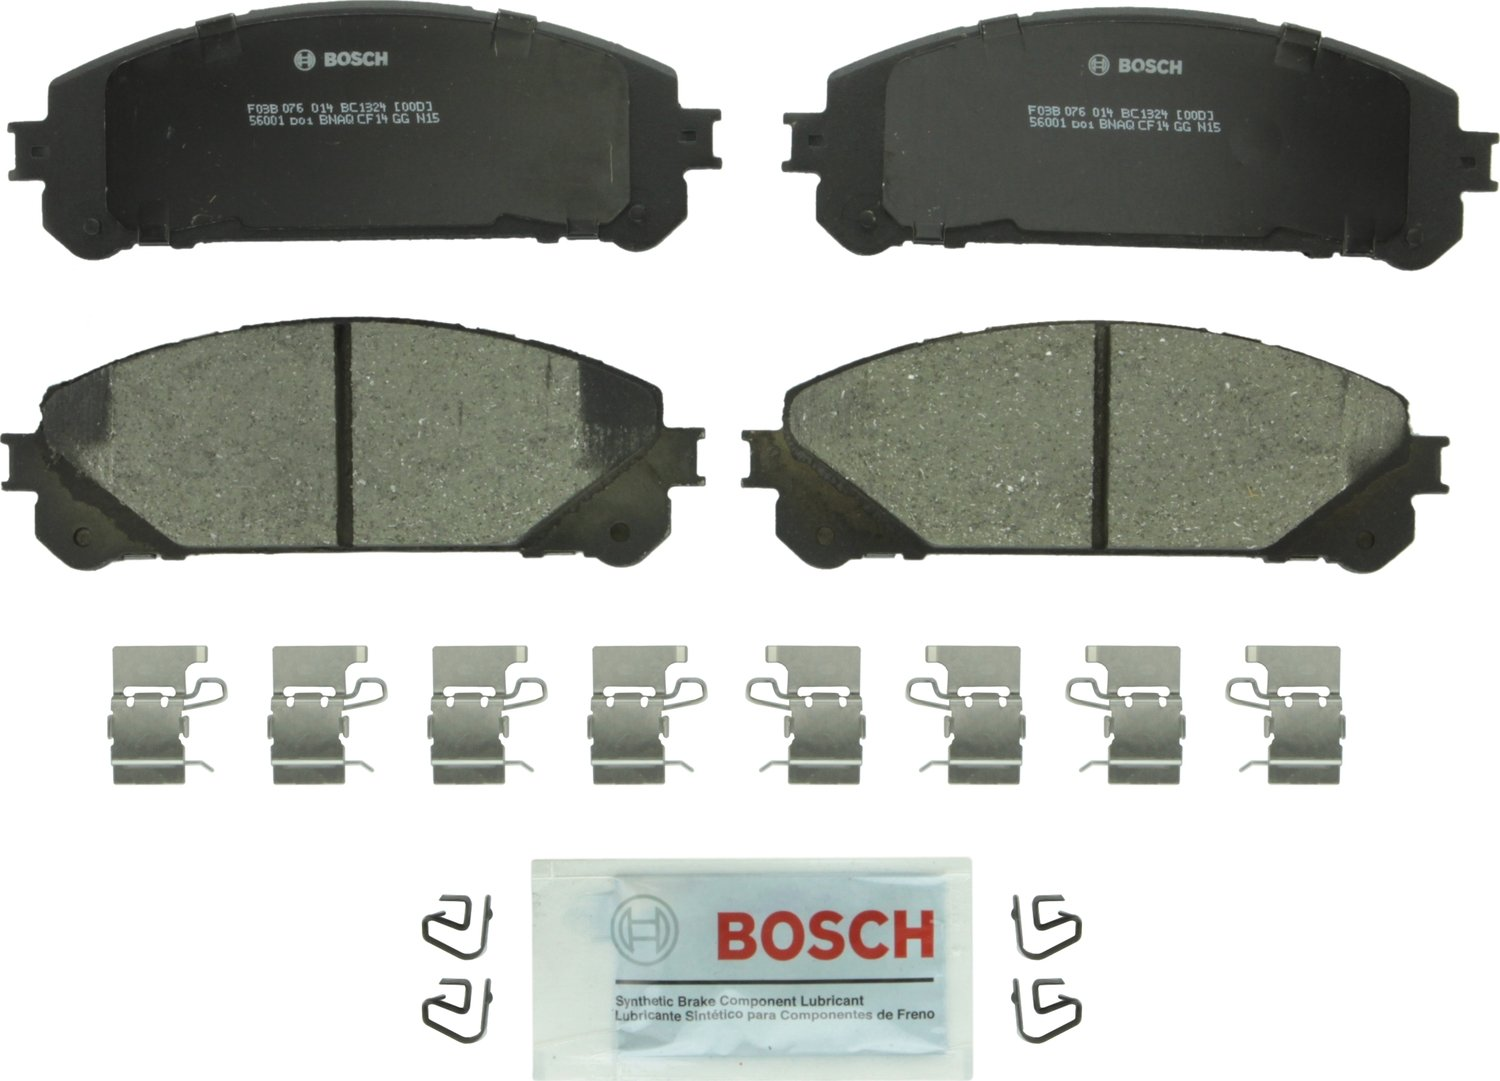 Bosch BC1324 QuietCast Premium Disc Brake Pad Set